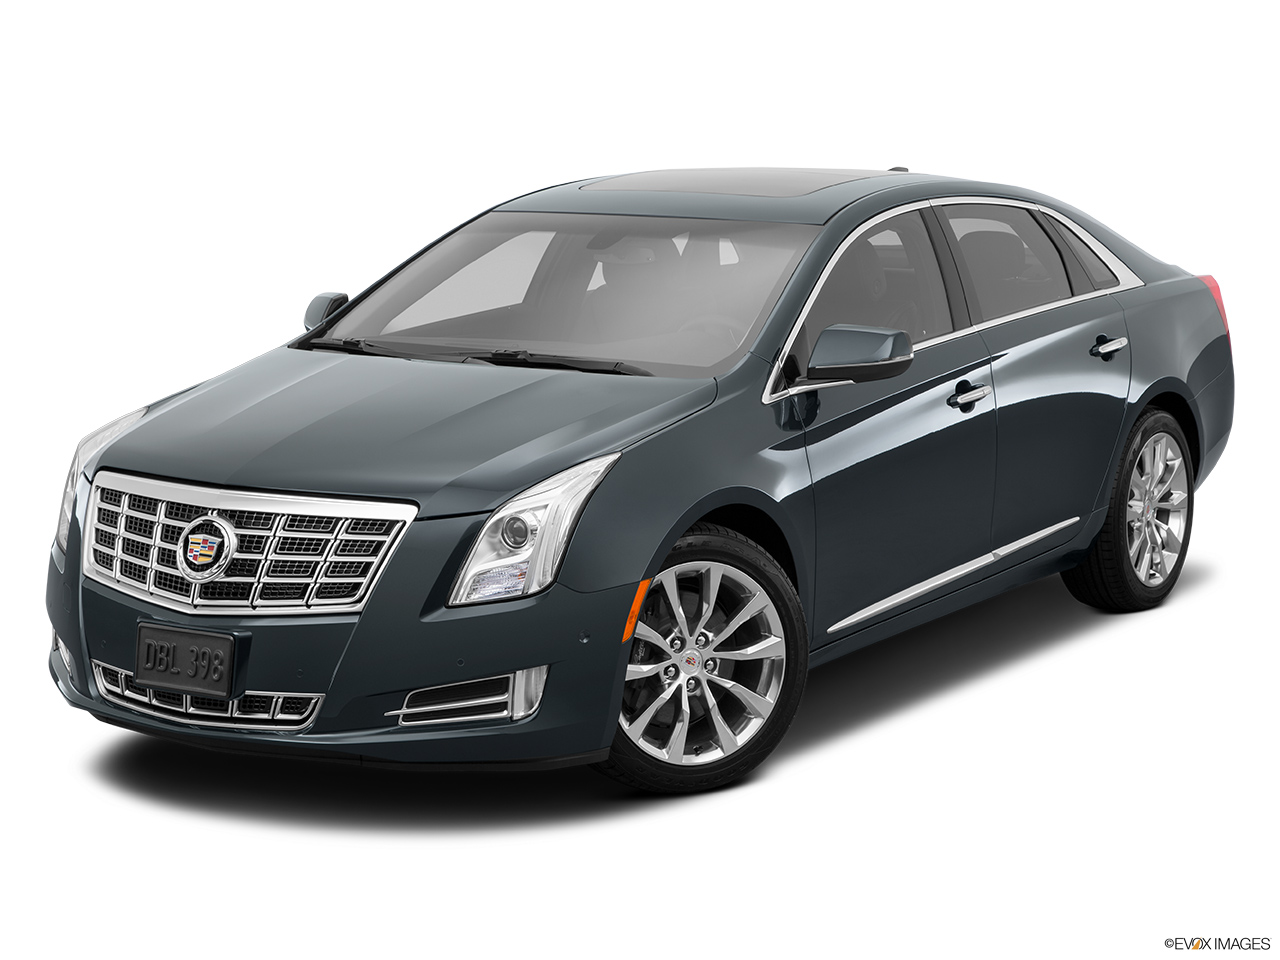 2016 cadillac xts armored fwd sedan. Black Bedroom Furniture Sets. Home Design Ideas